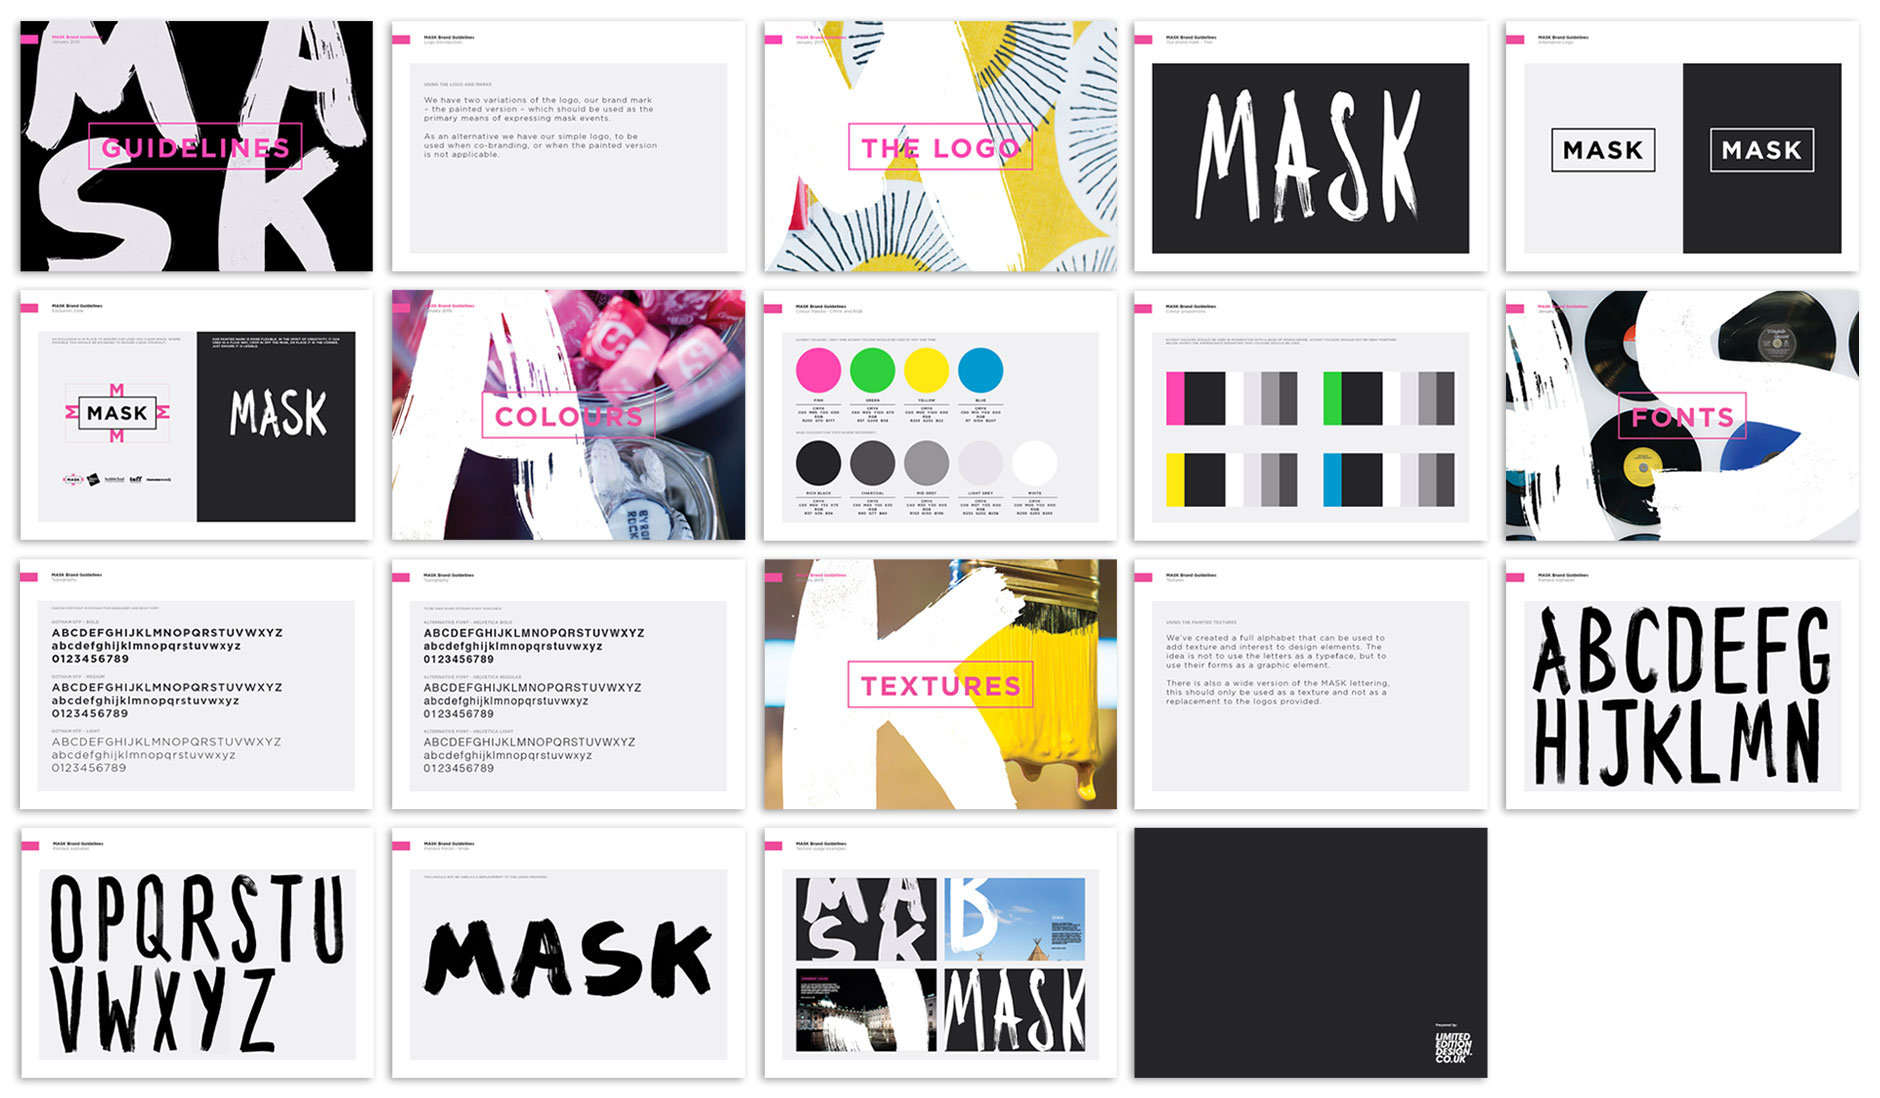 mask_guidelines